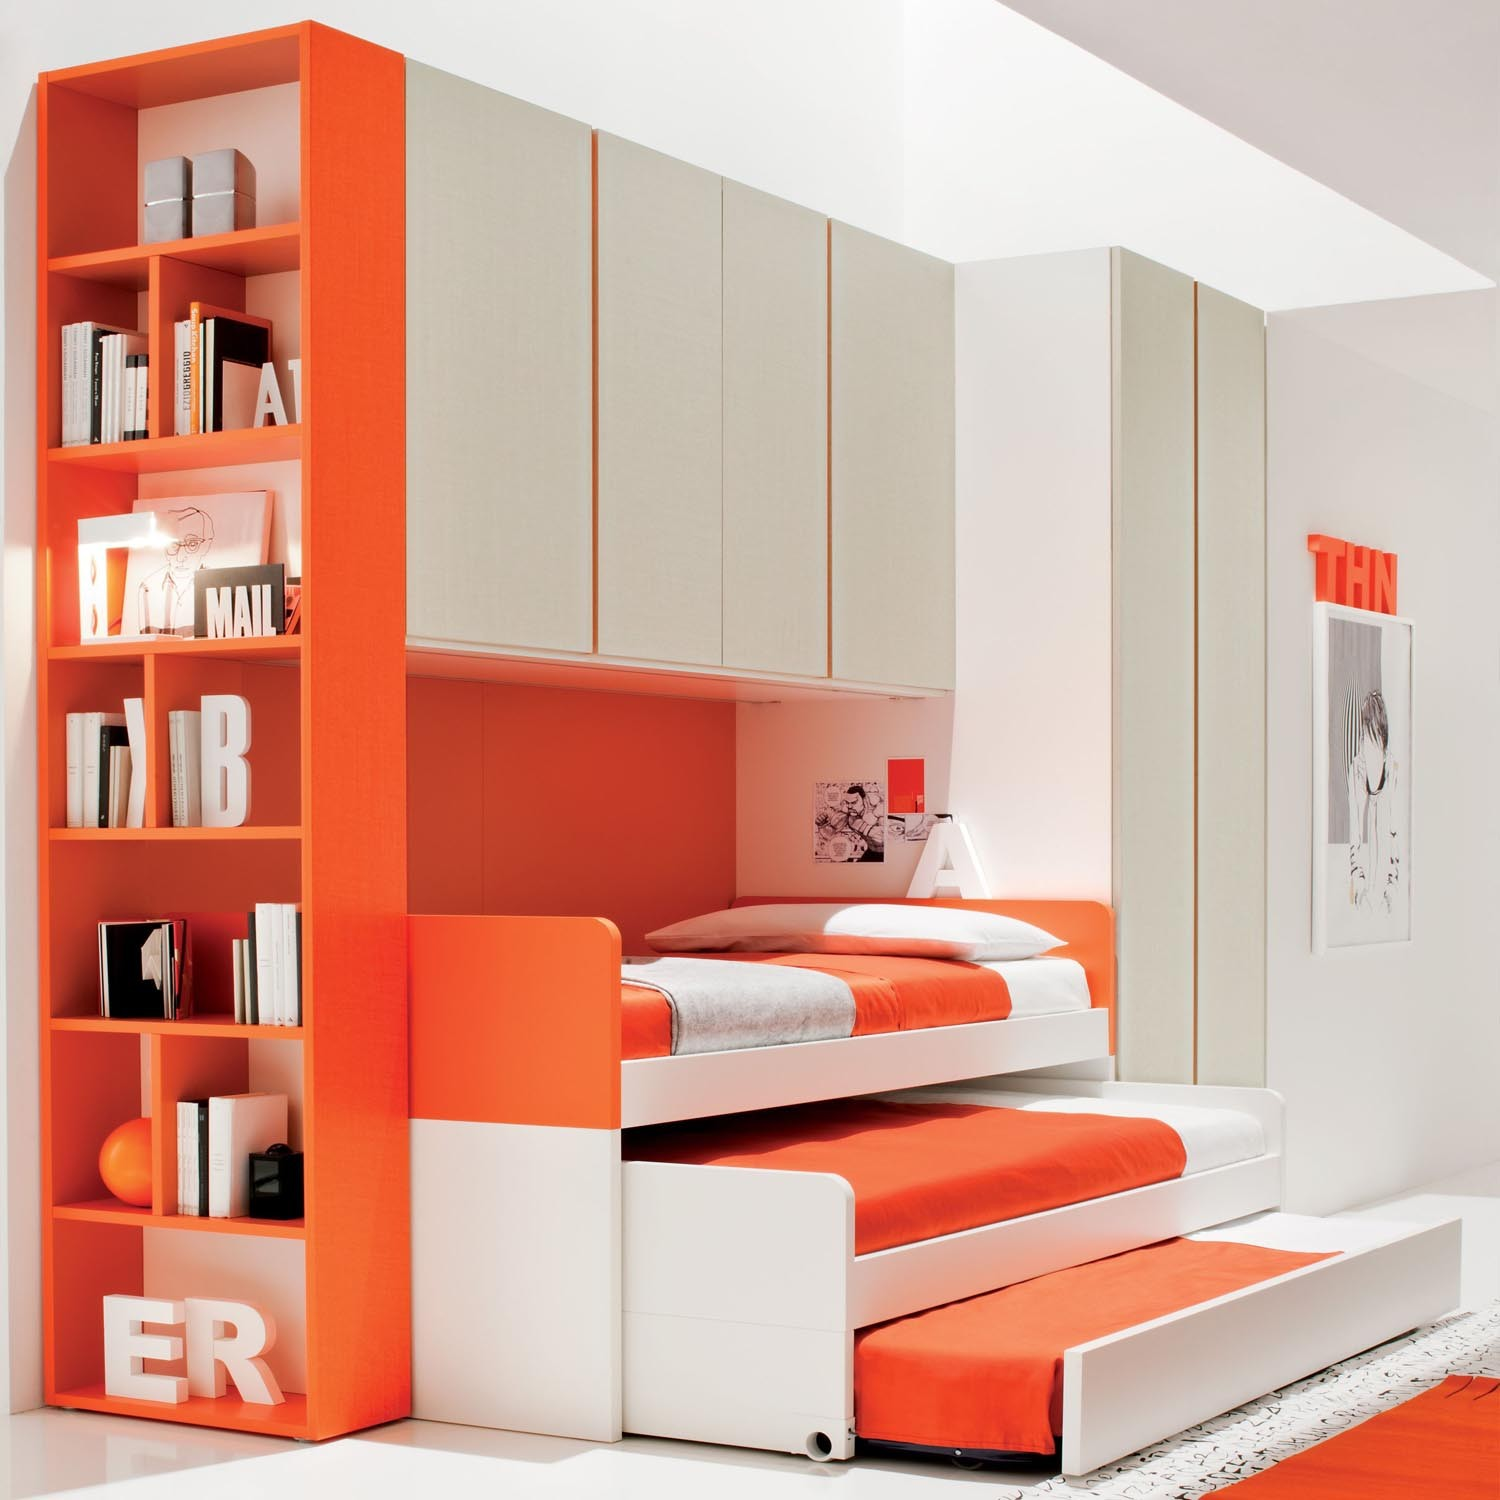 beds with storage space zampco - beds with storage space orange kids beds with storage and bookshelves infascinating bedroom using white